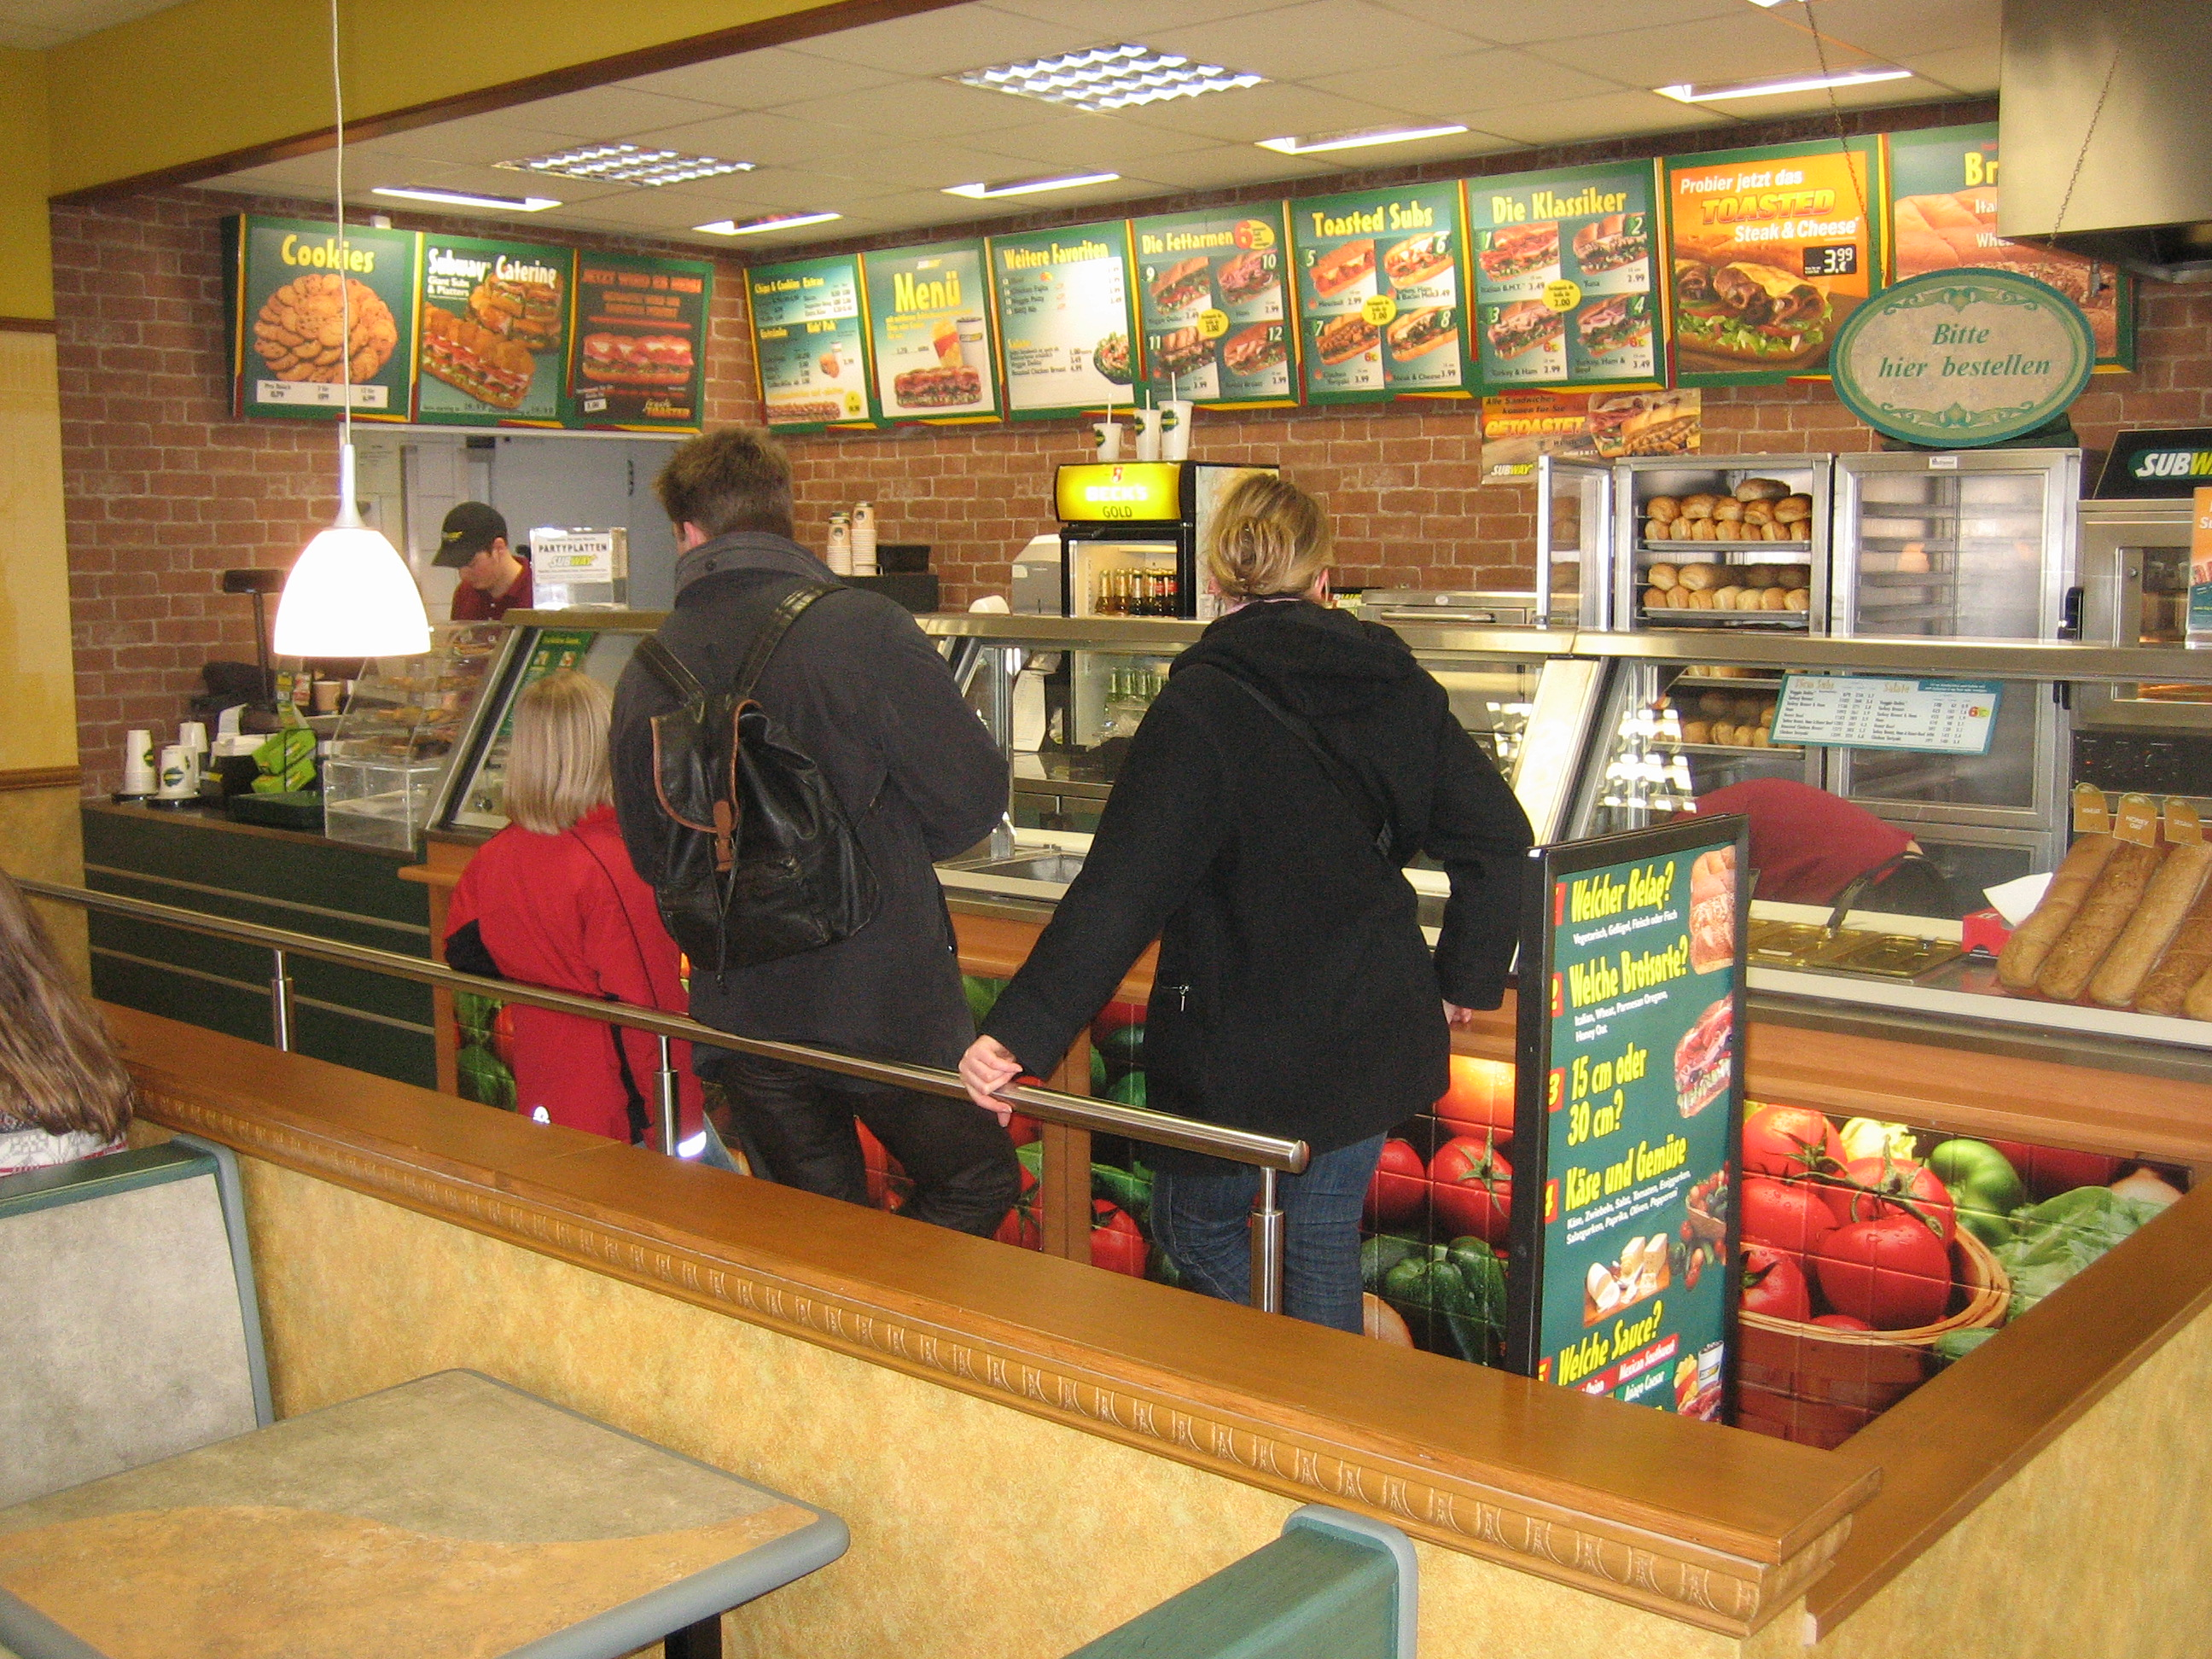 Ordering at a Subway restaurant